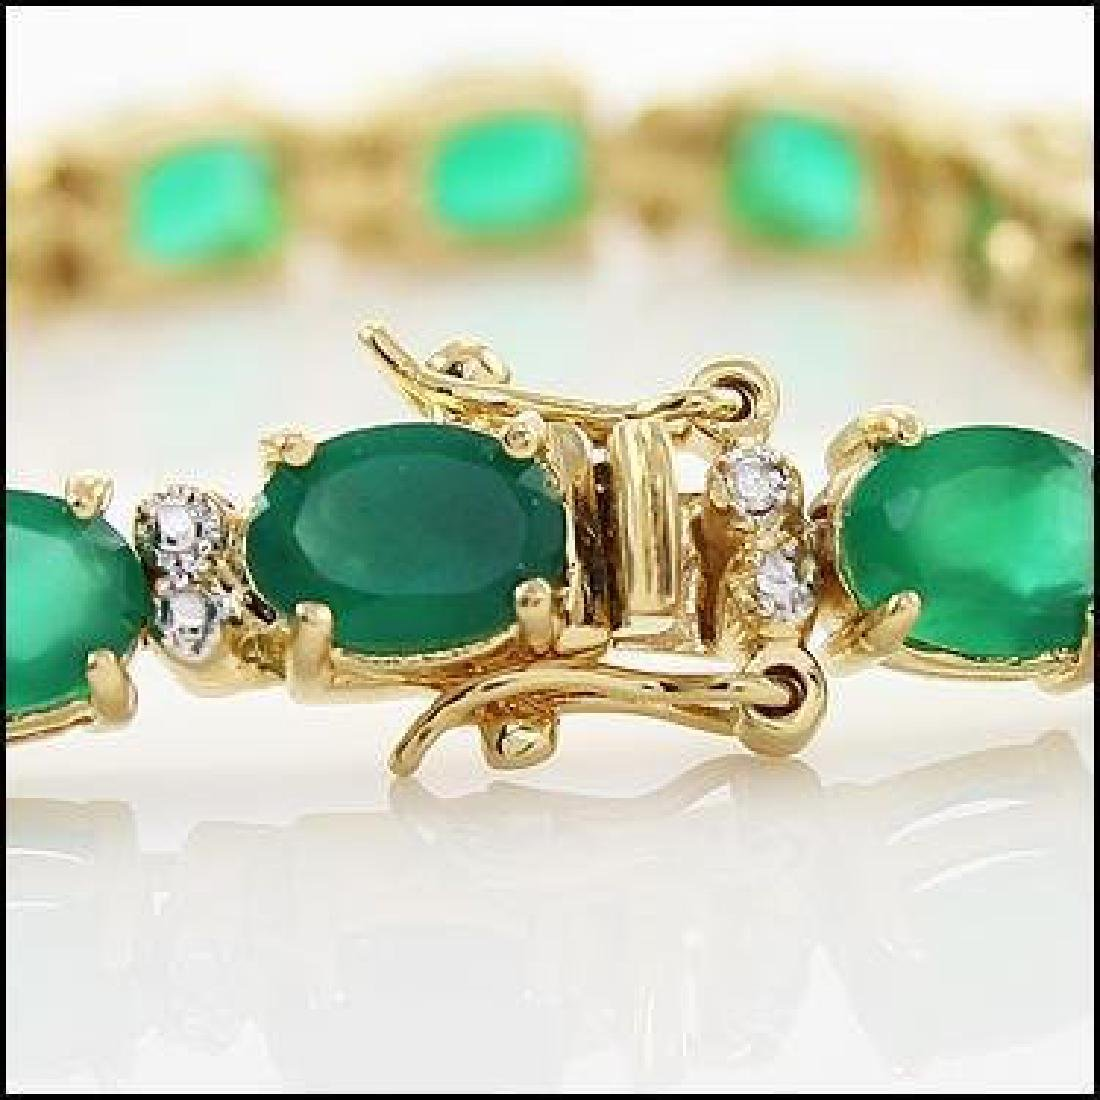 13 CT Green Agate Diamond Tennis Bracelet